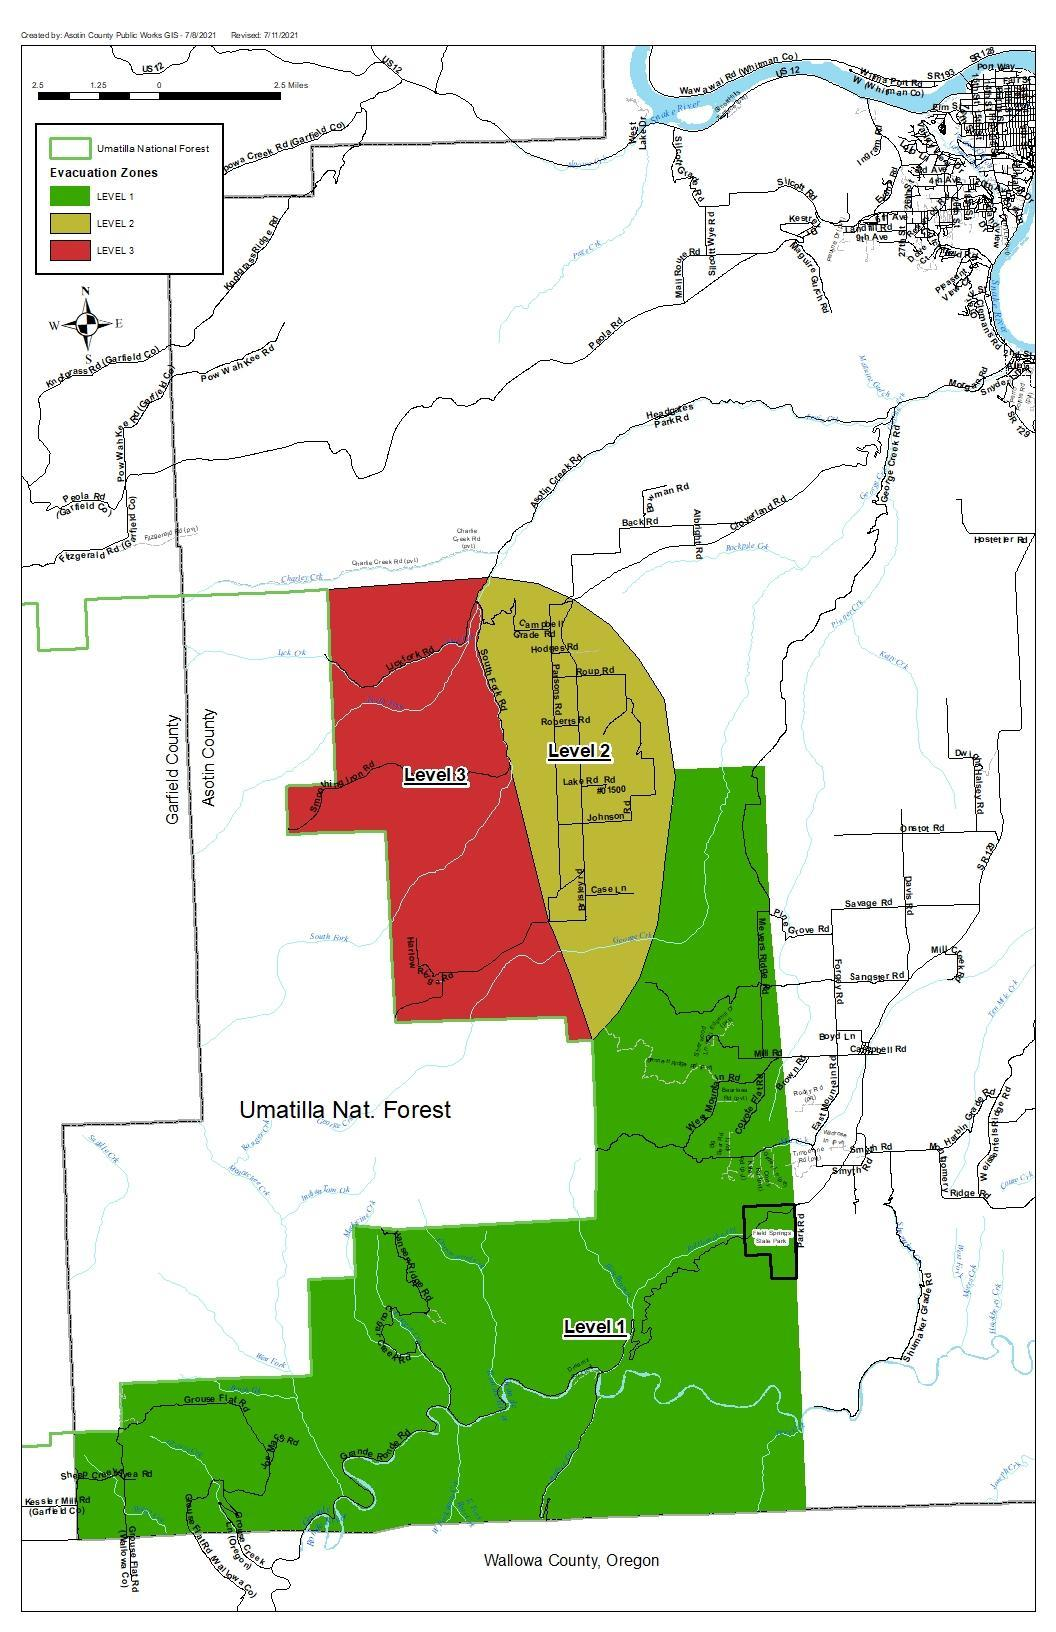 A map from Asotin County Emergency Management showing evacuation zones for the Dry Gulch Fire